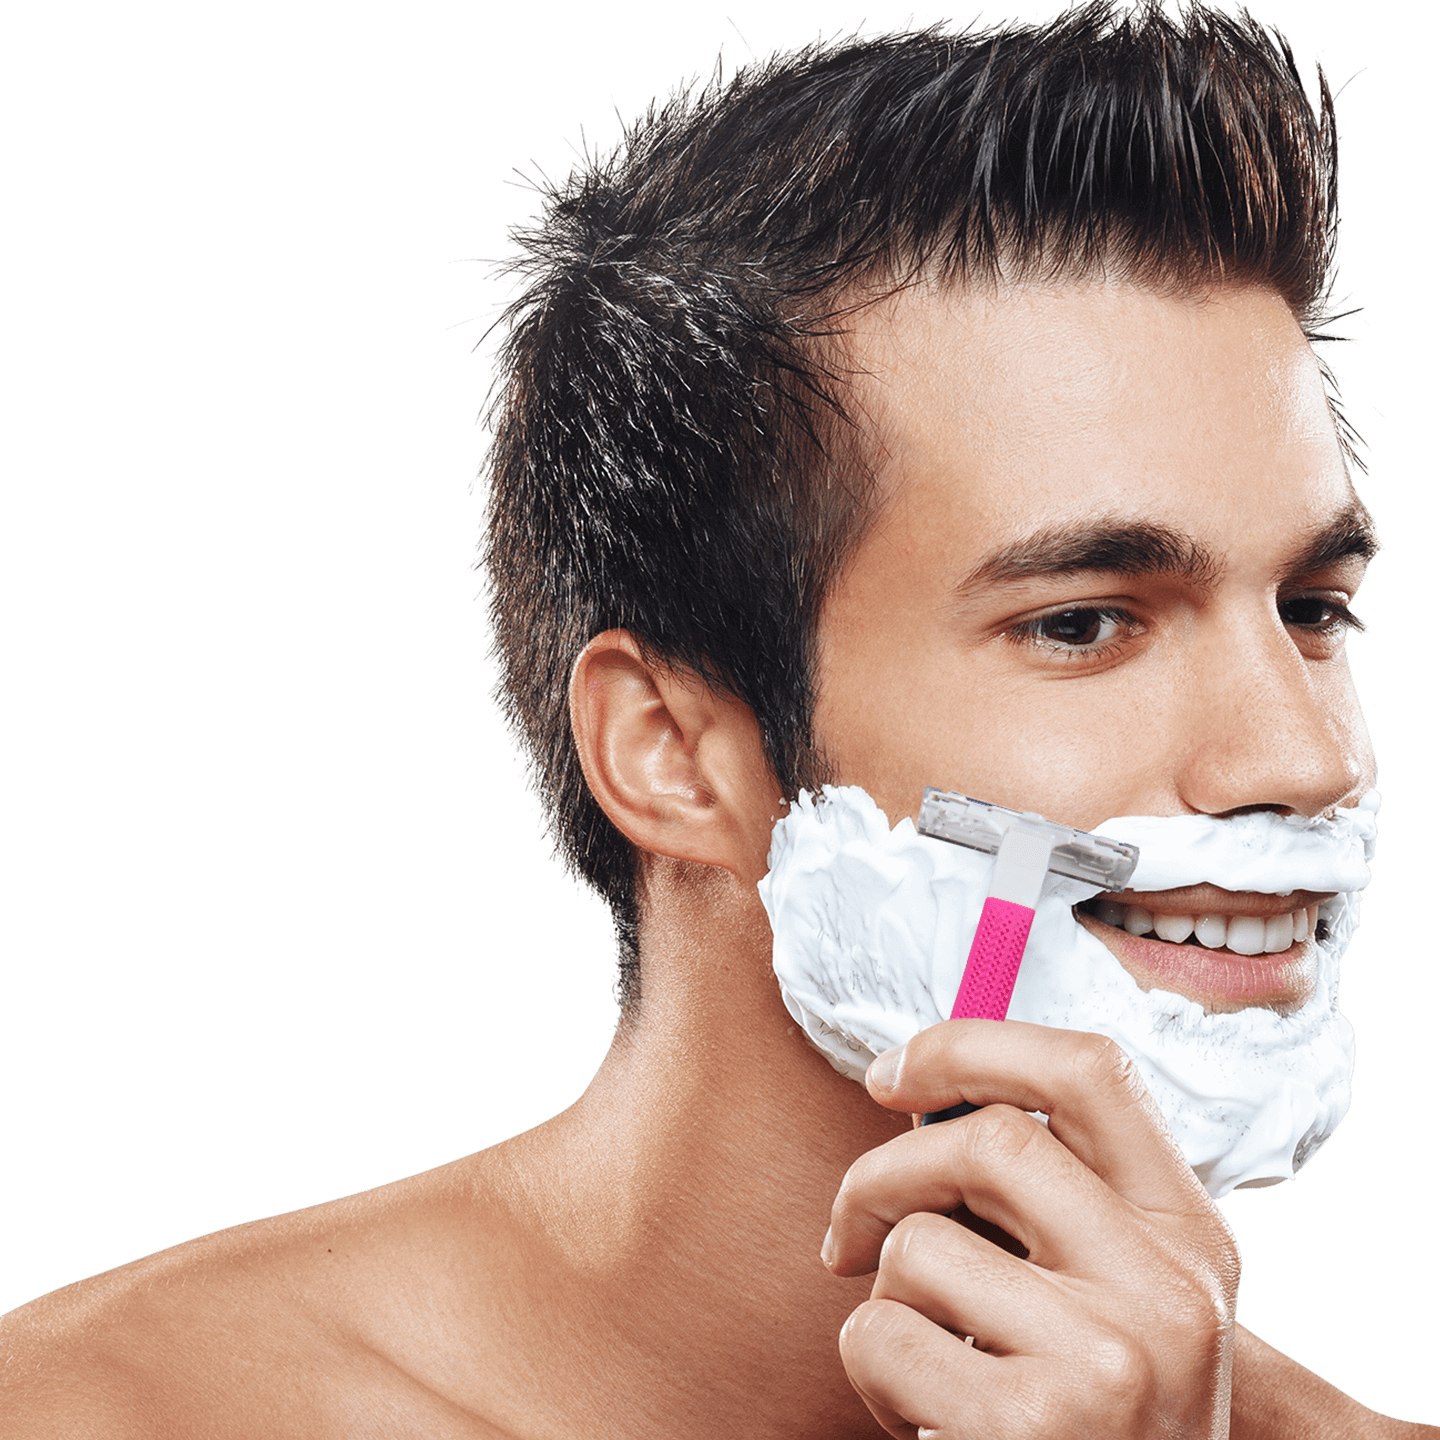 Men's razors, women's razors. What's the difference?